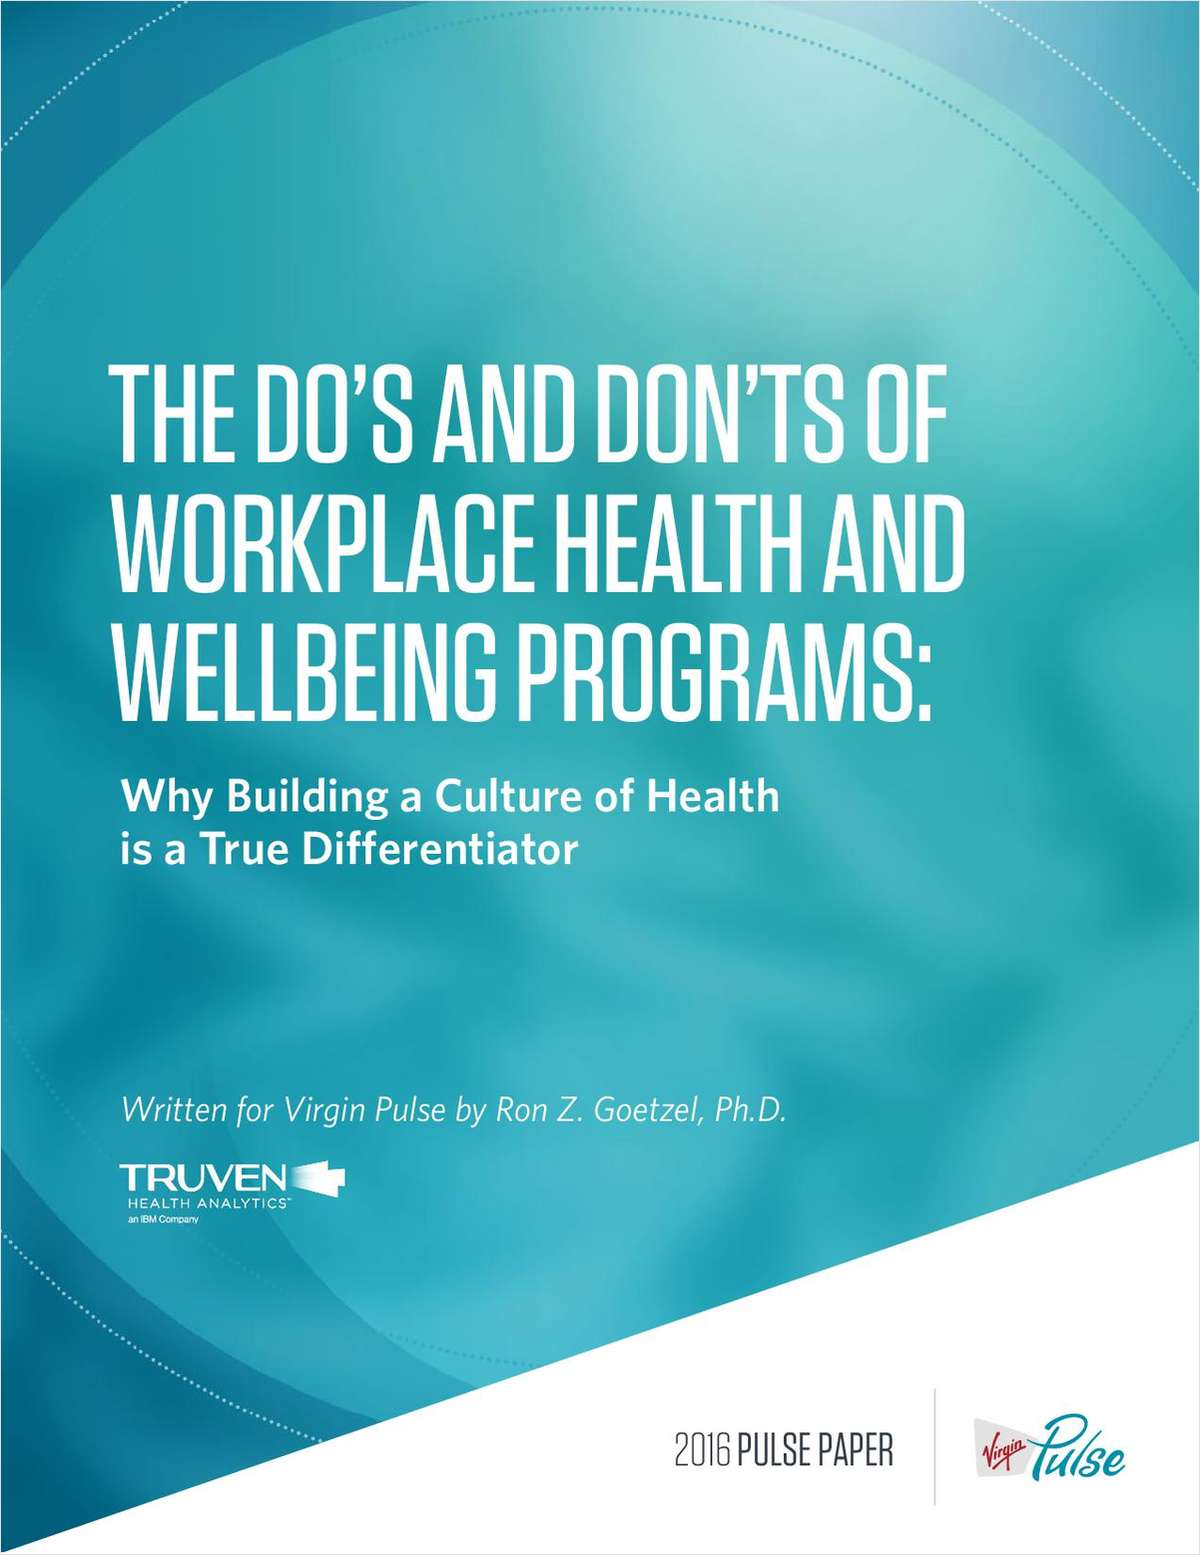 The Do's and Don'ts of Workplace Health and Wellbeing Programs